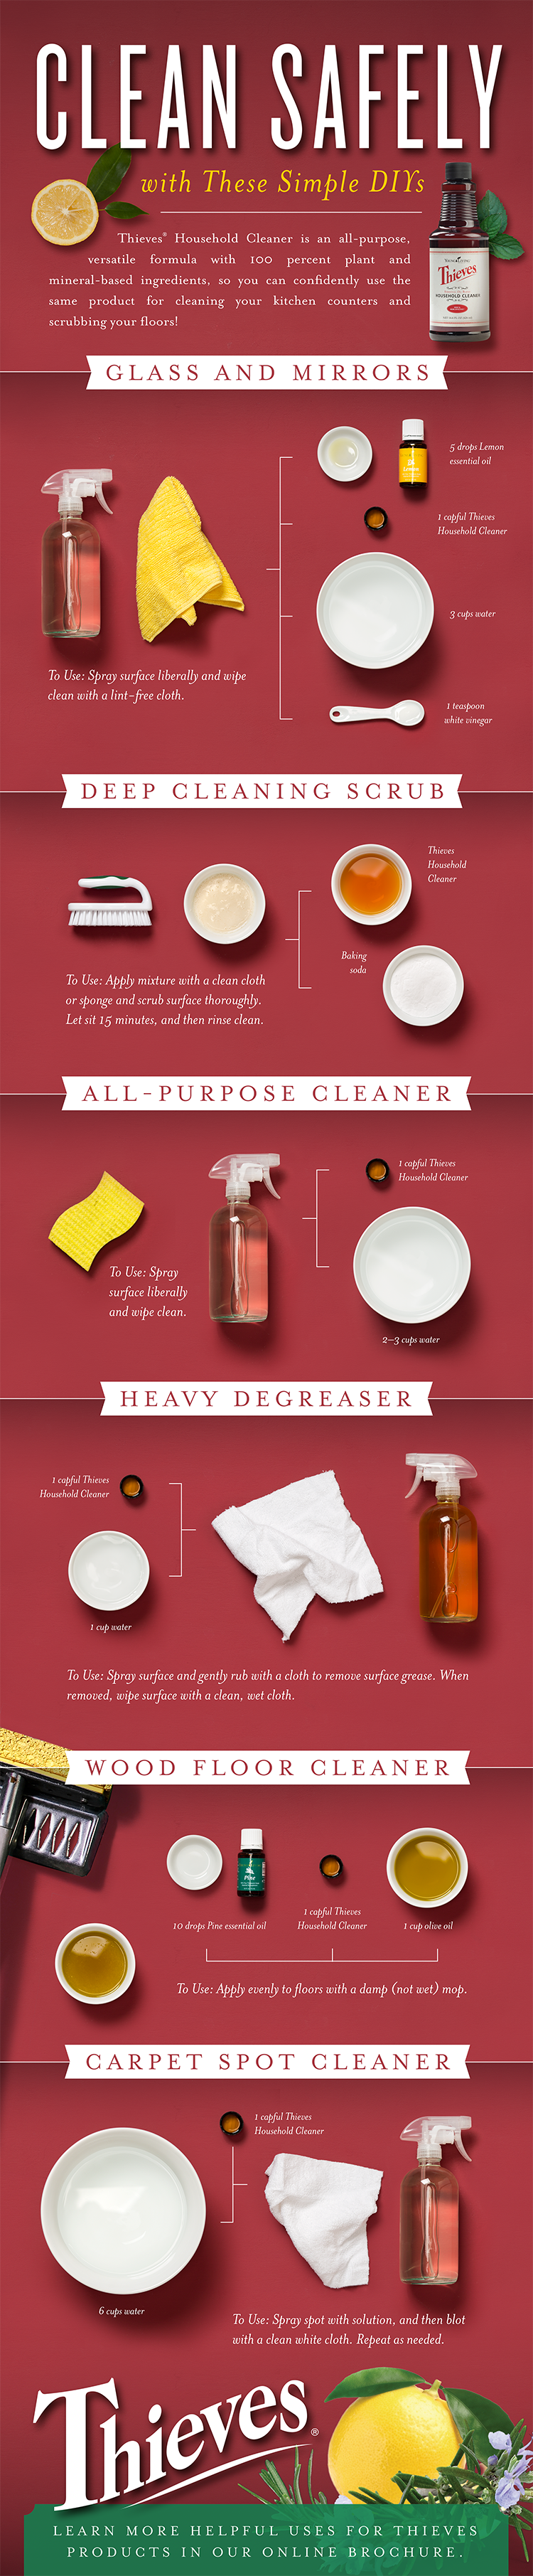 http://static.youngliving.com/en-US/IMAGES/infographic_clean_safely.png